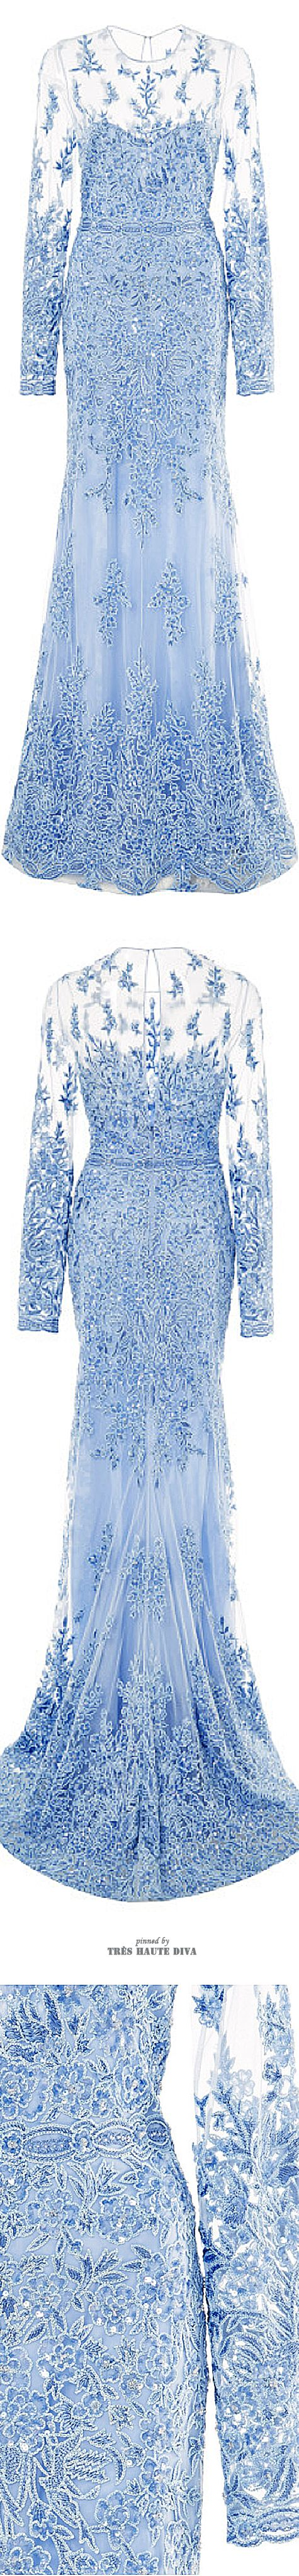 Naeem Khan Lace Embroidered Light Blue Gown ♔ SS 2015